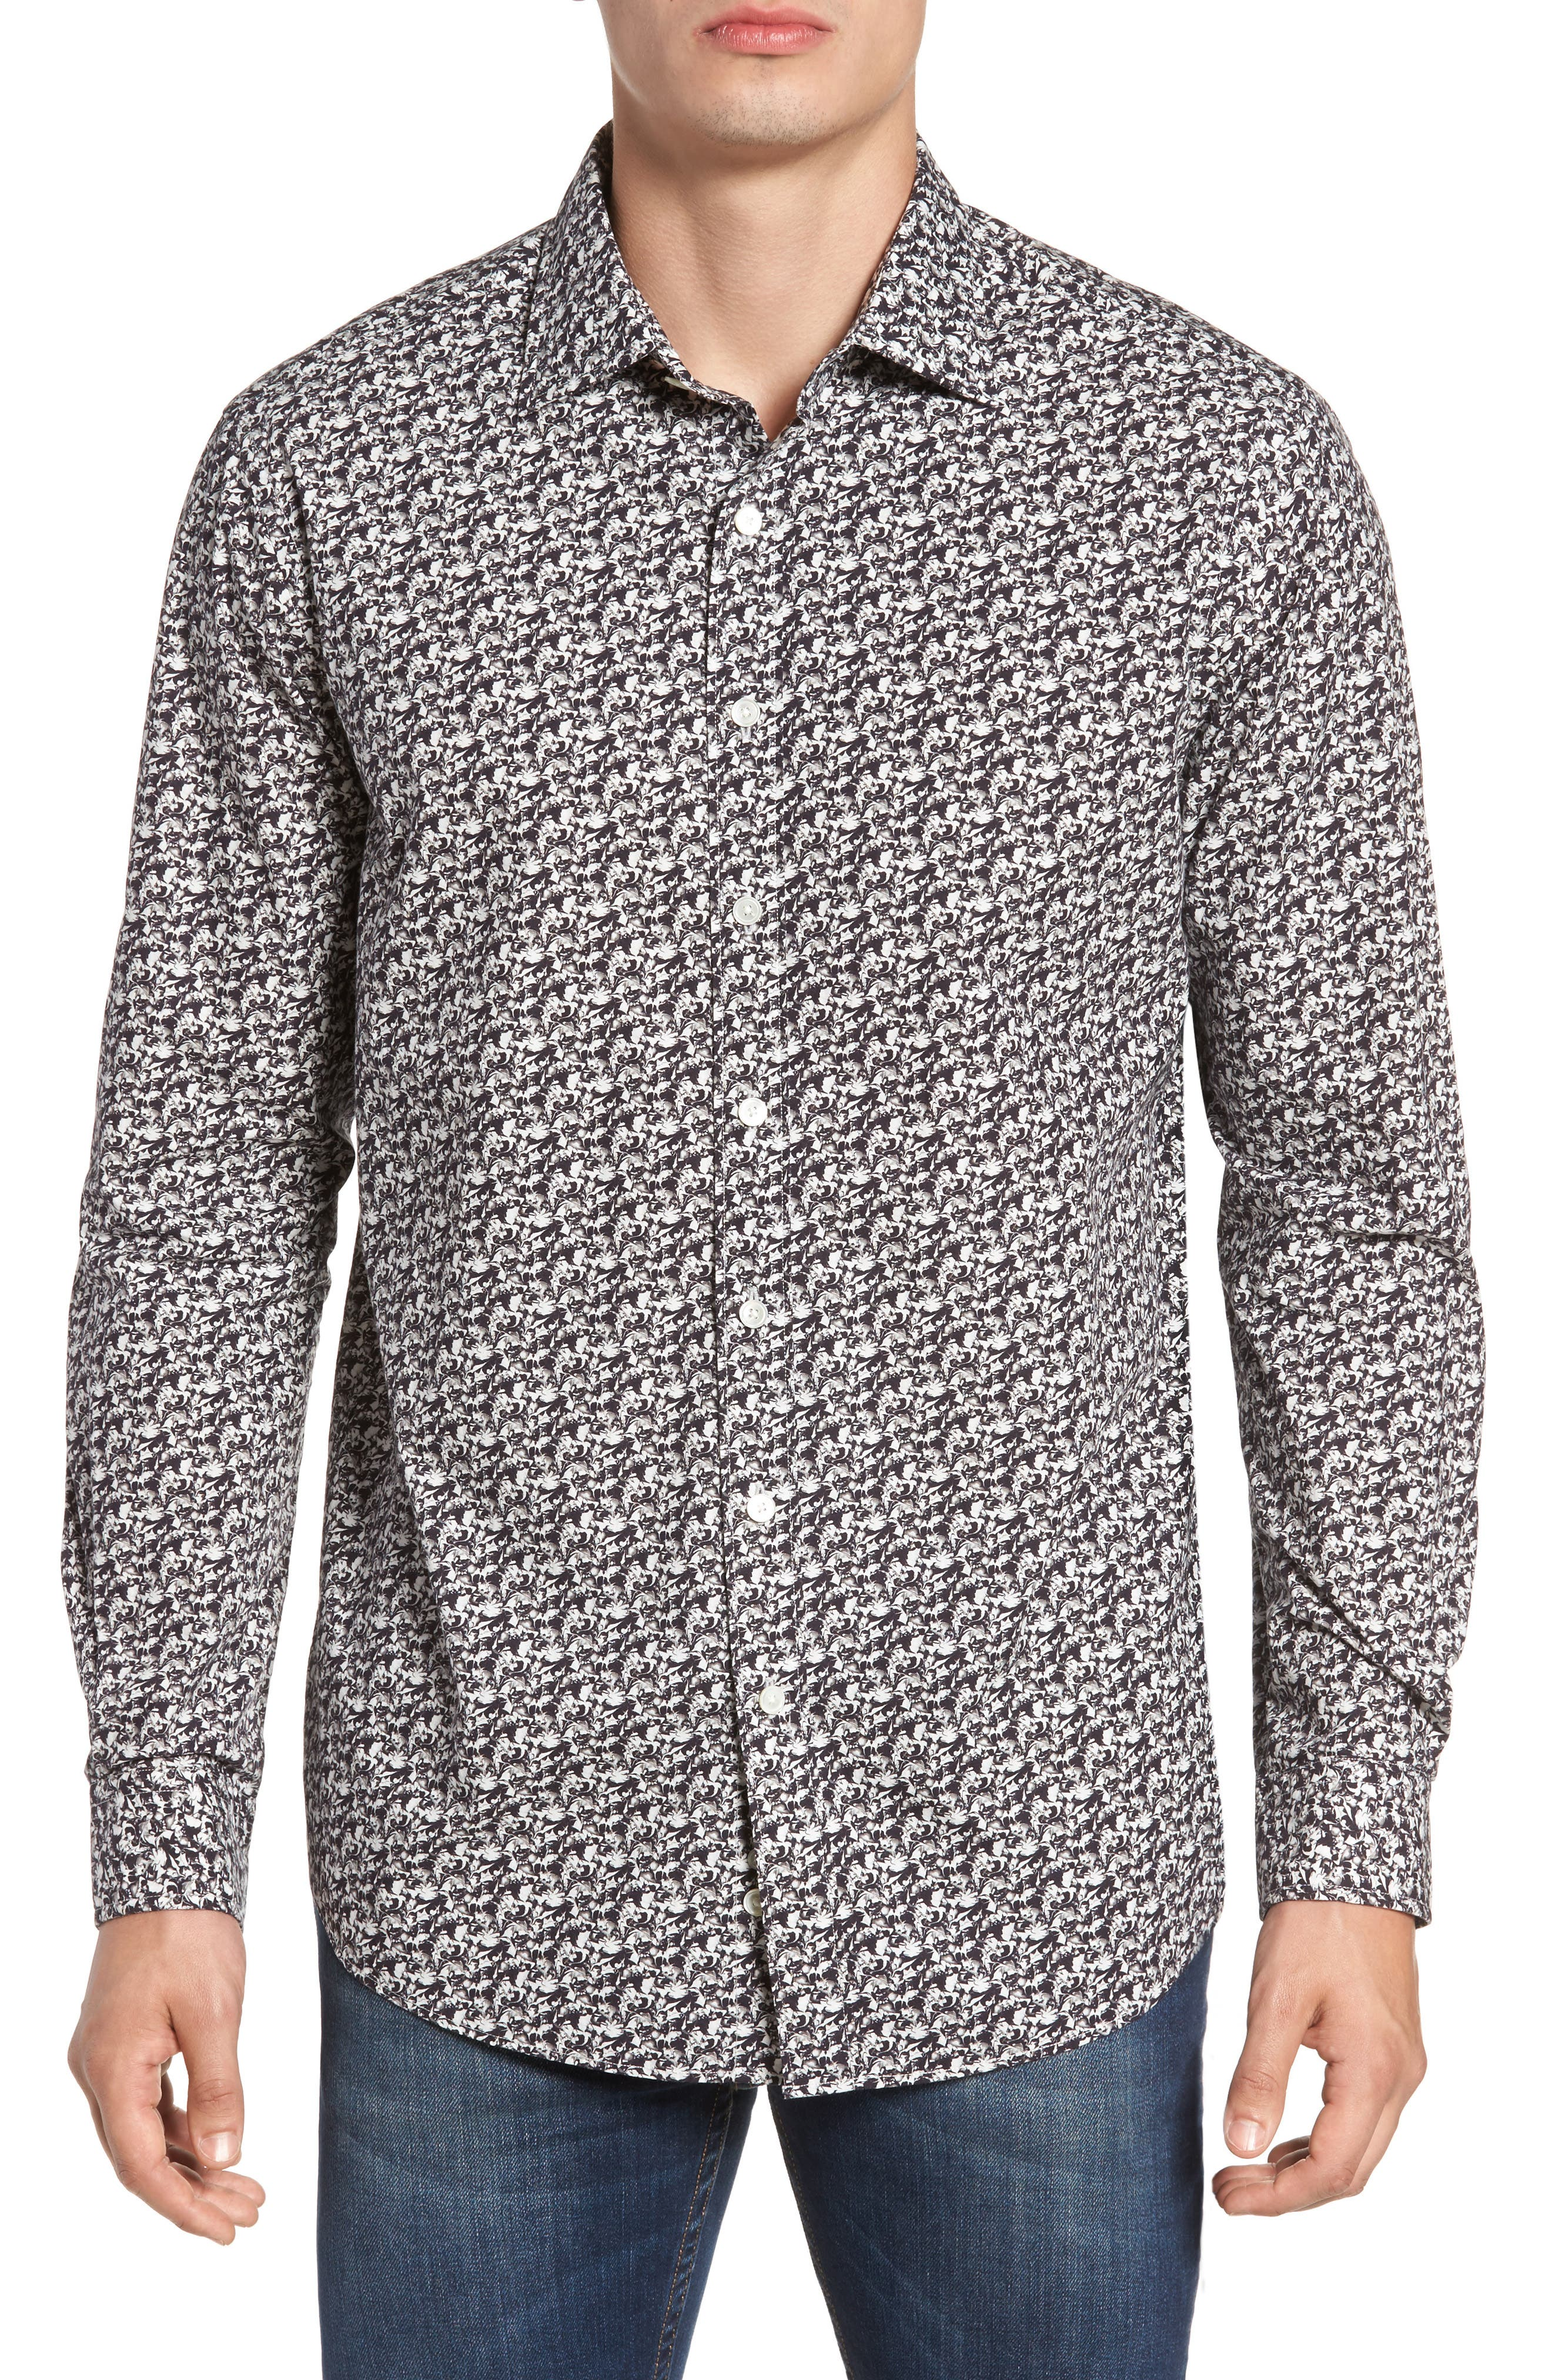 Bucklands Beach Print Sport Shirt,                         Main,                         color,